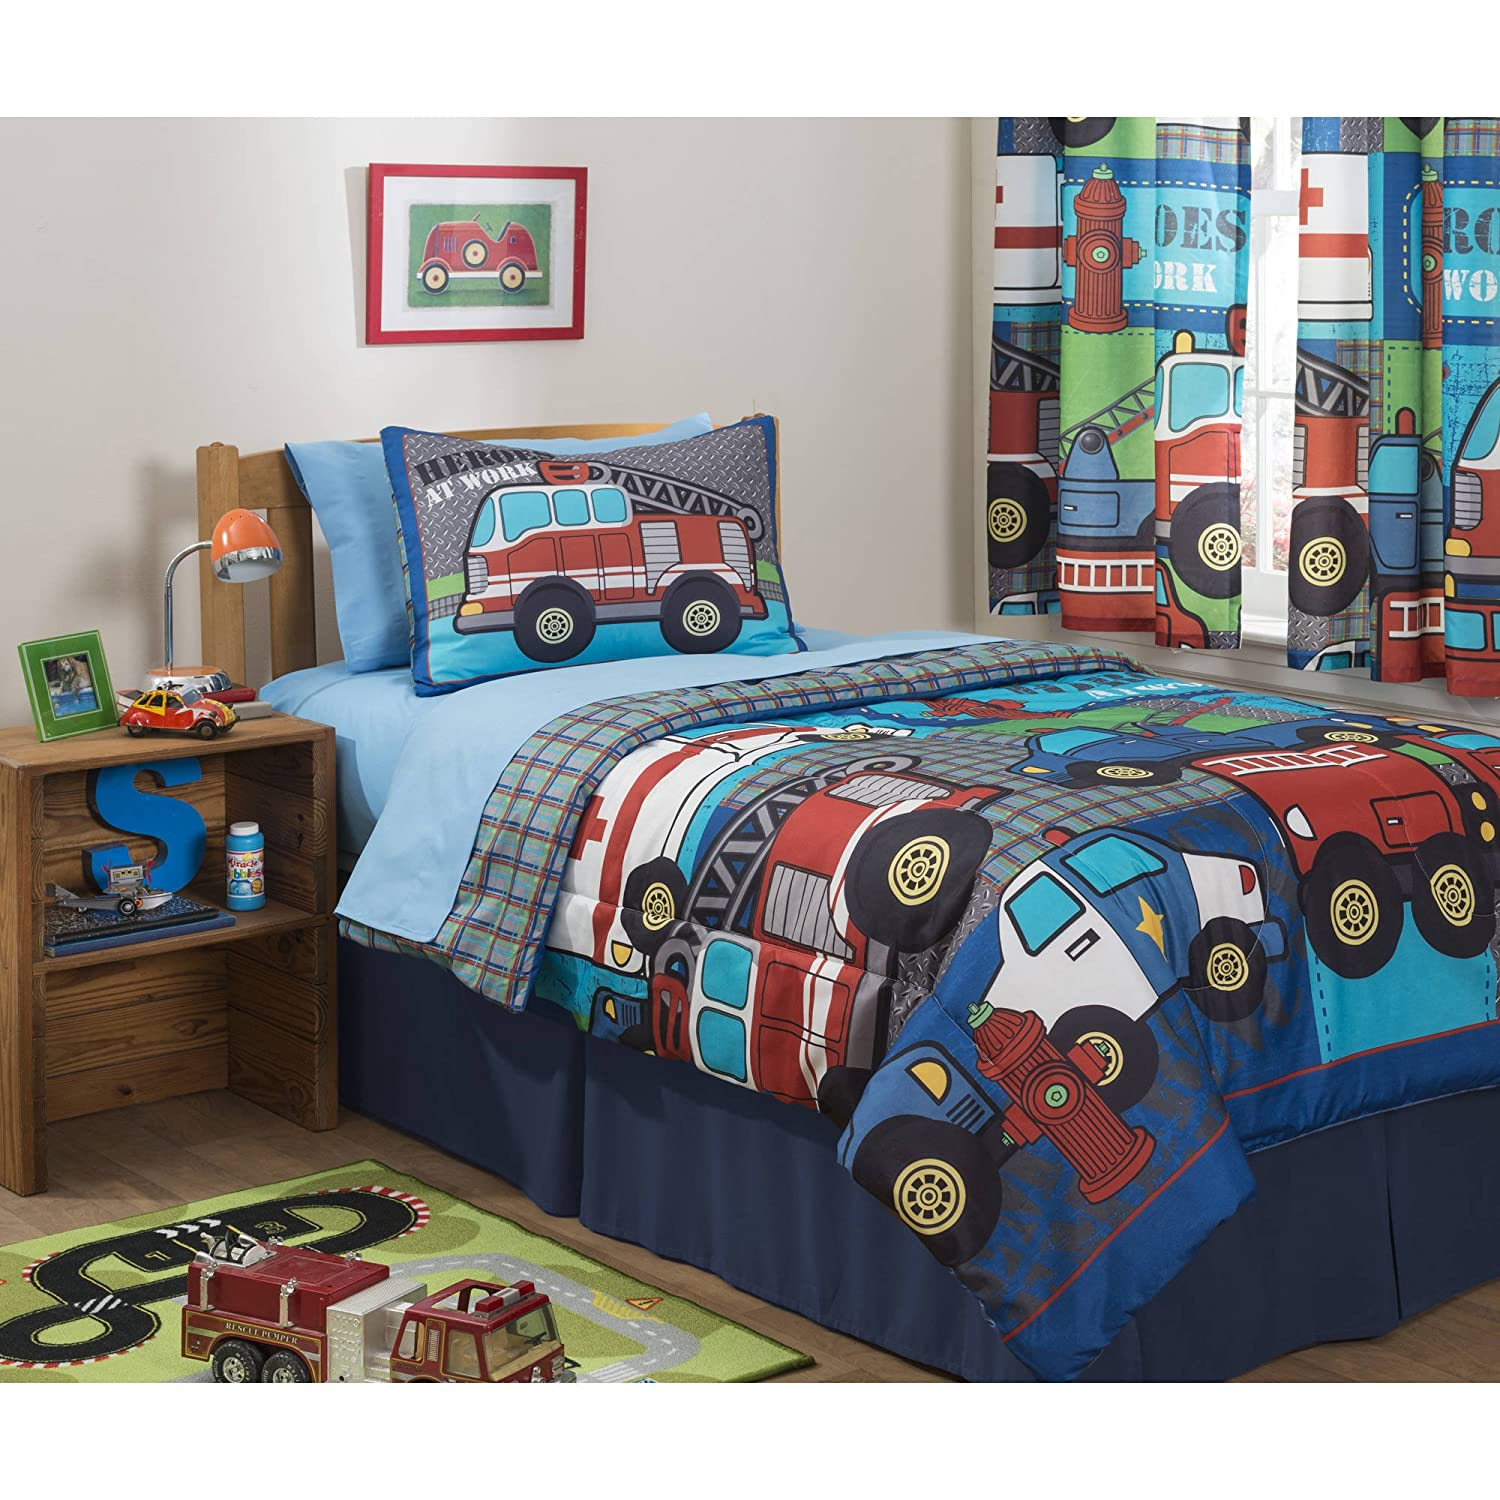 Mainstays Kids Police, Fire and Emergency Cars Heroes at Work Bedding Full Comforter Set for Boys (6 Piece in a Bag)